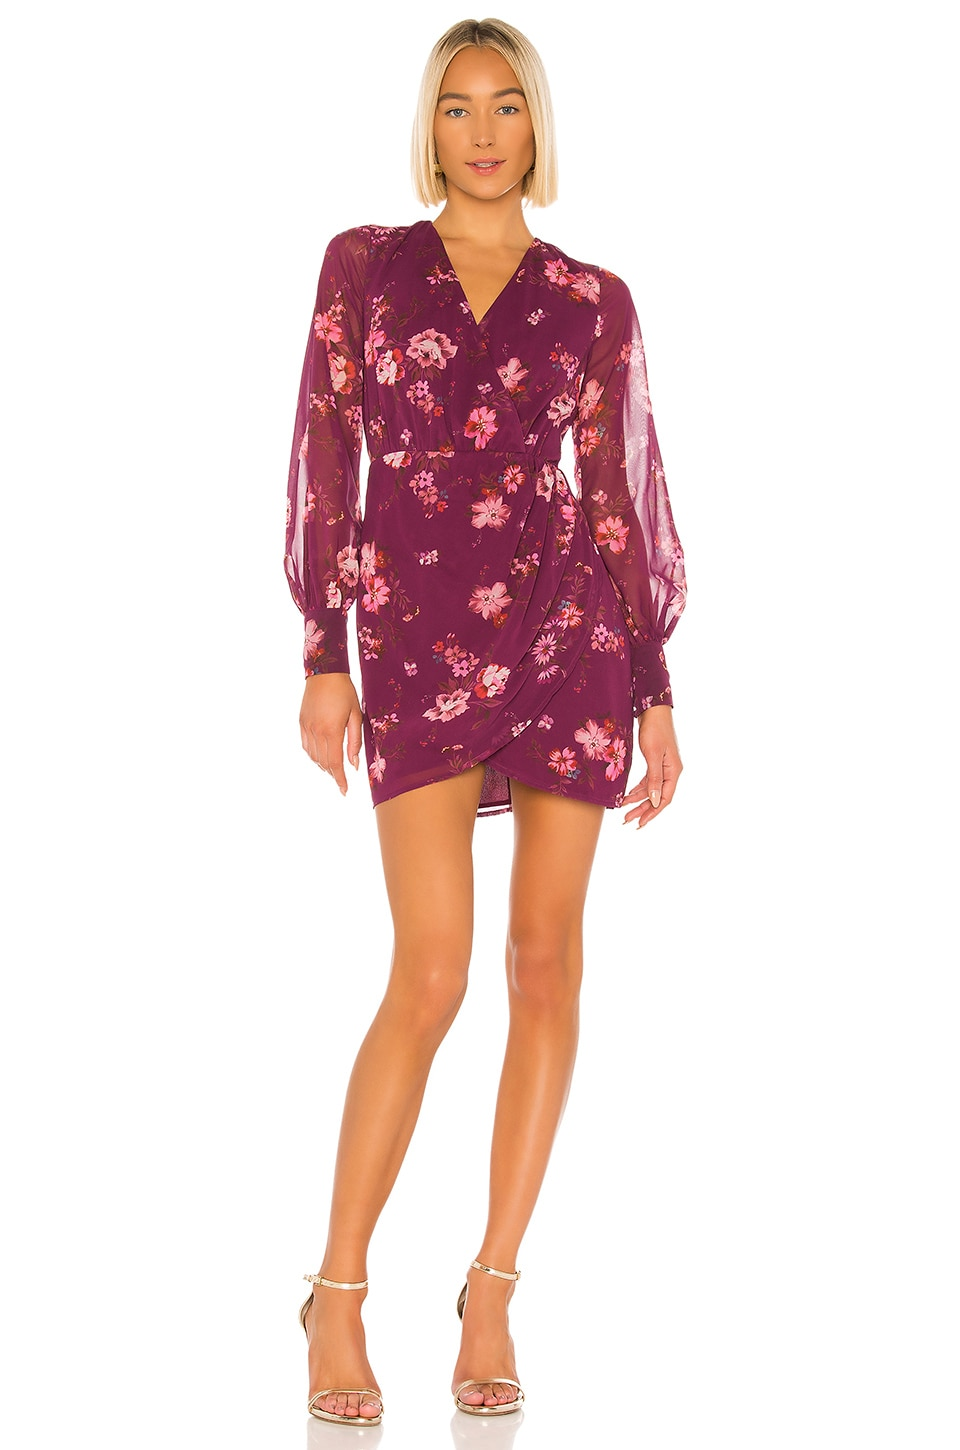 LPA Maisie Dress in Jolene Floral